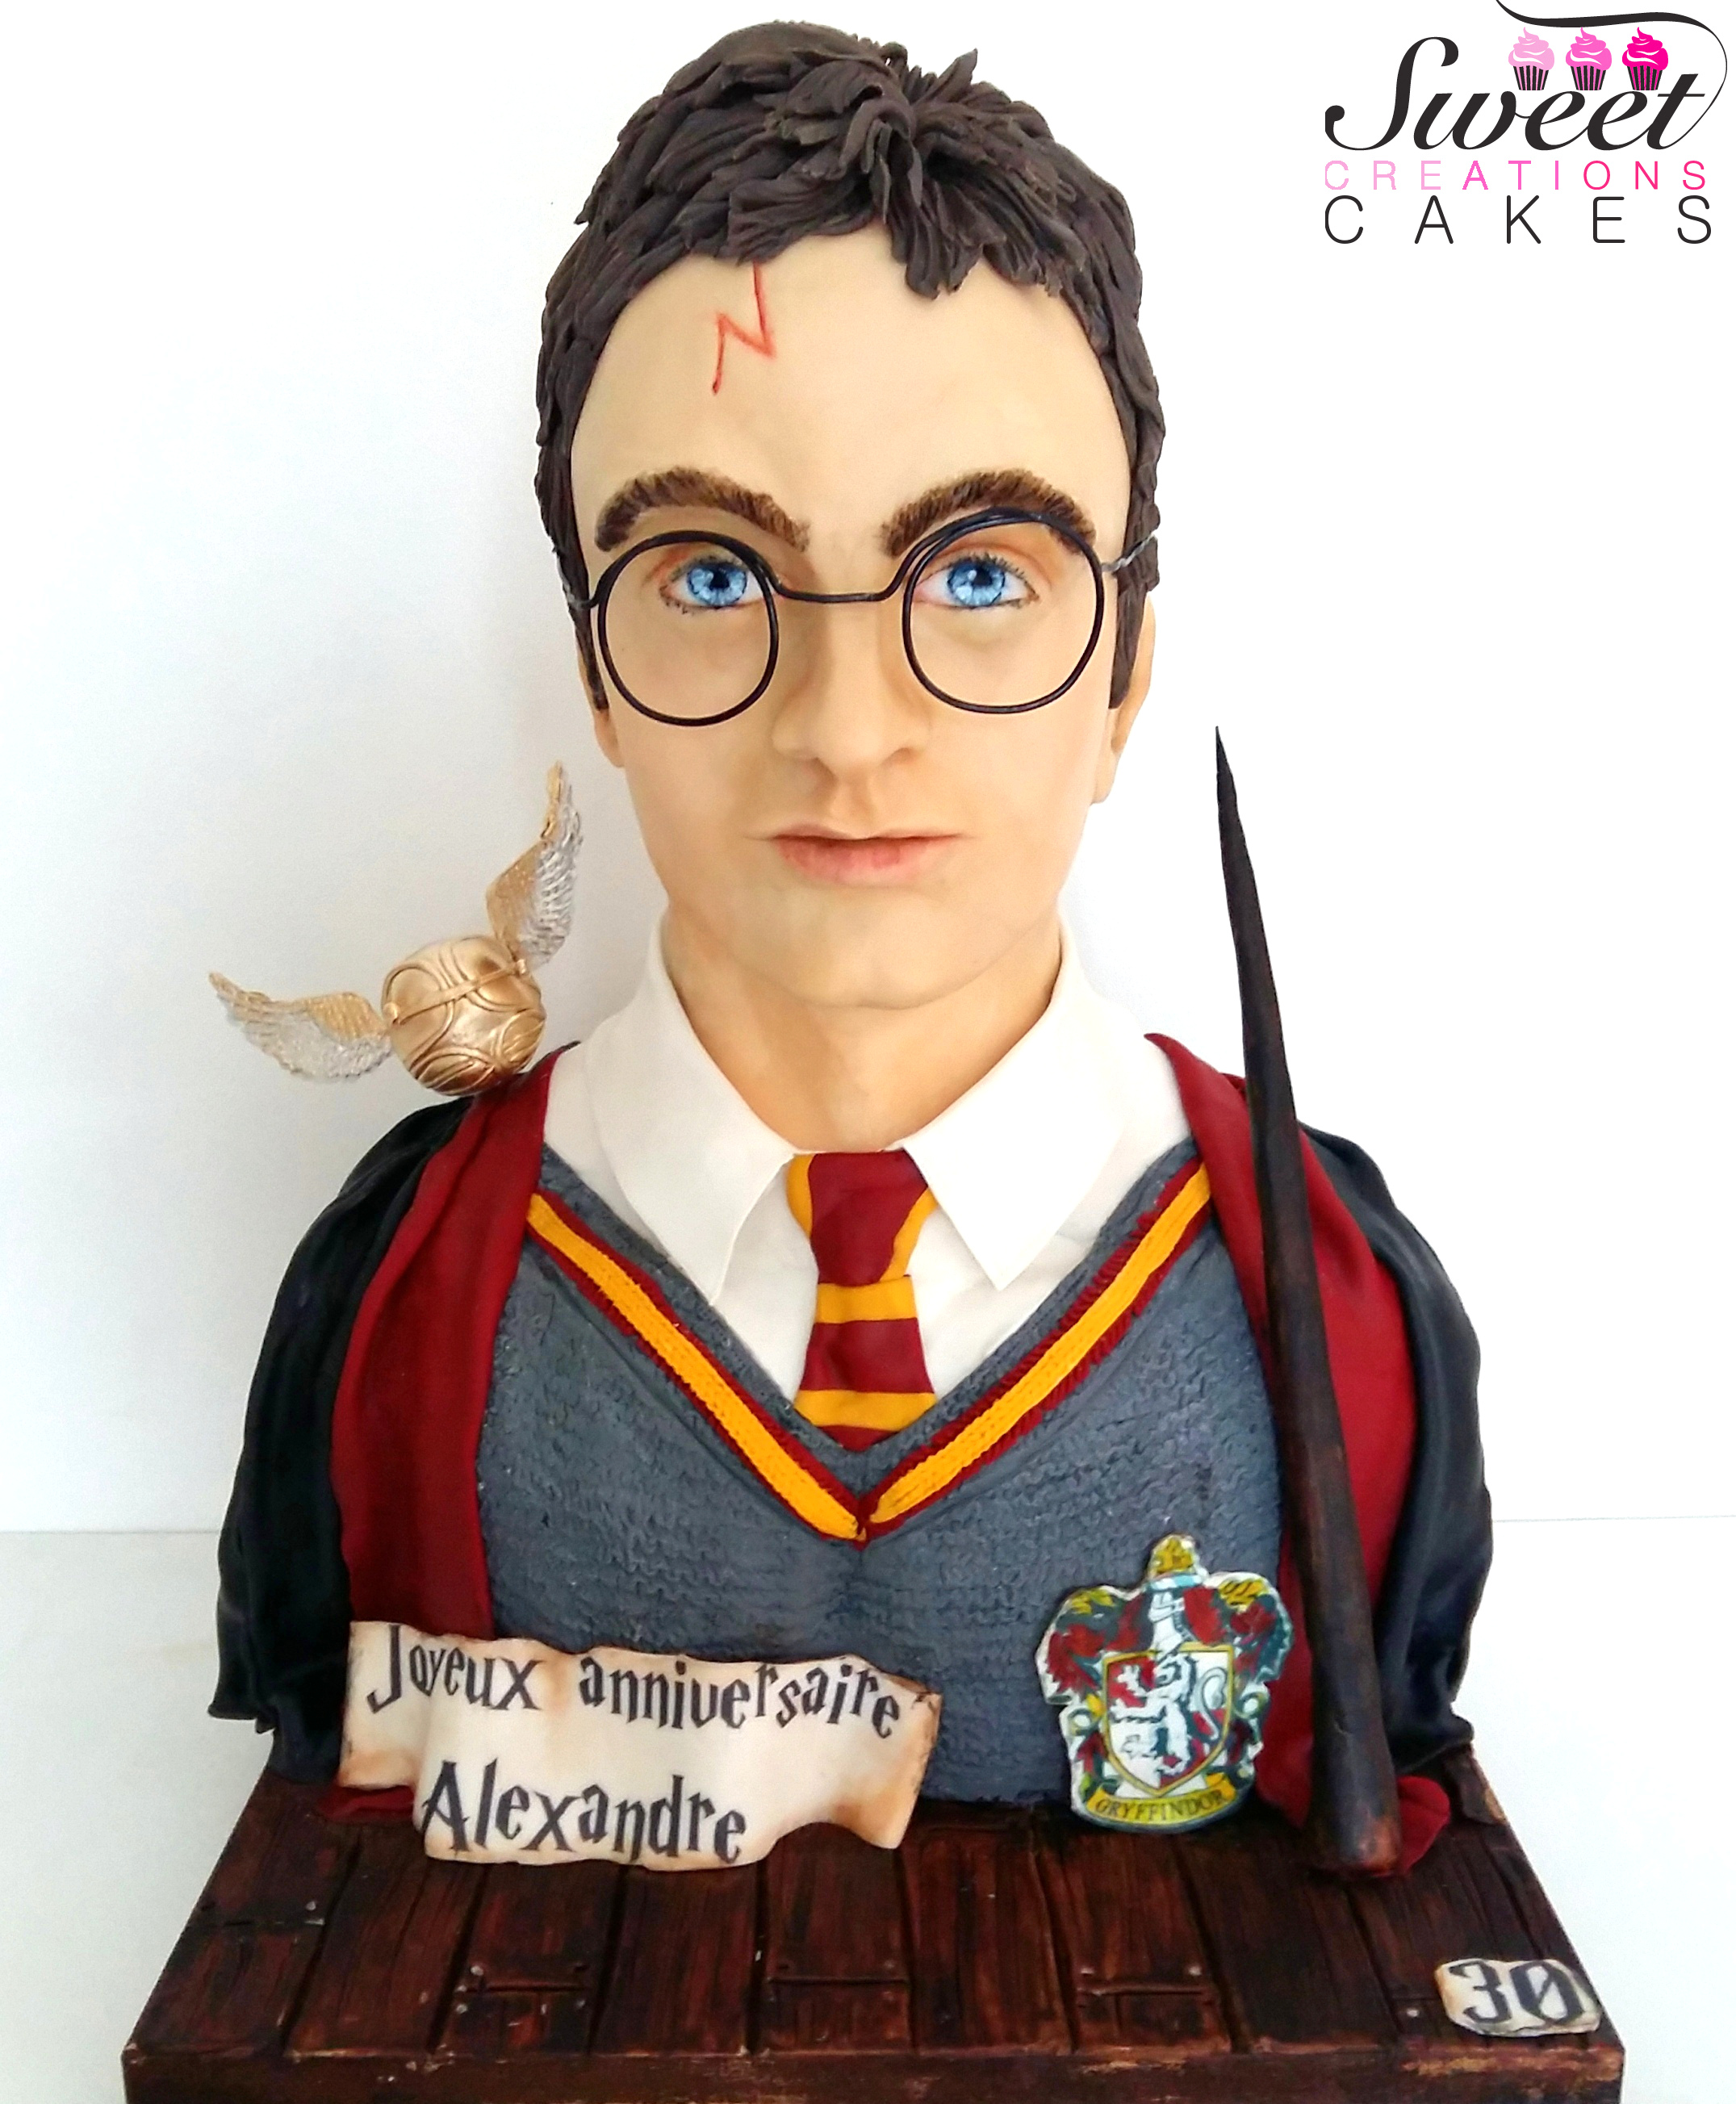 Harry Potter bust cake